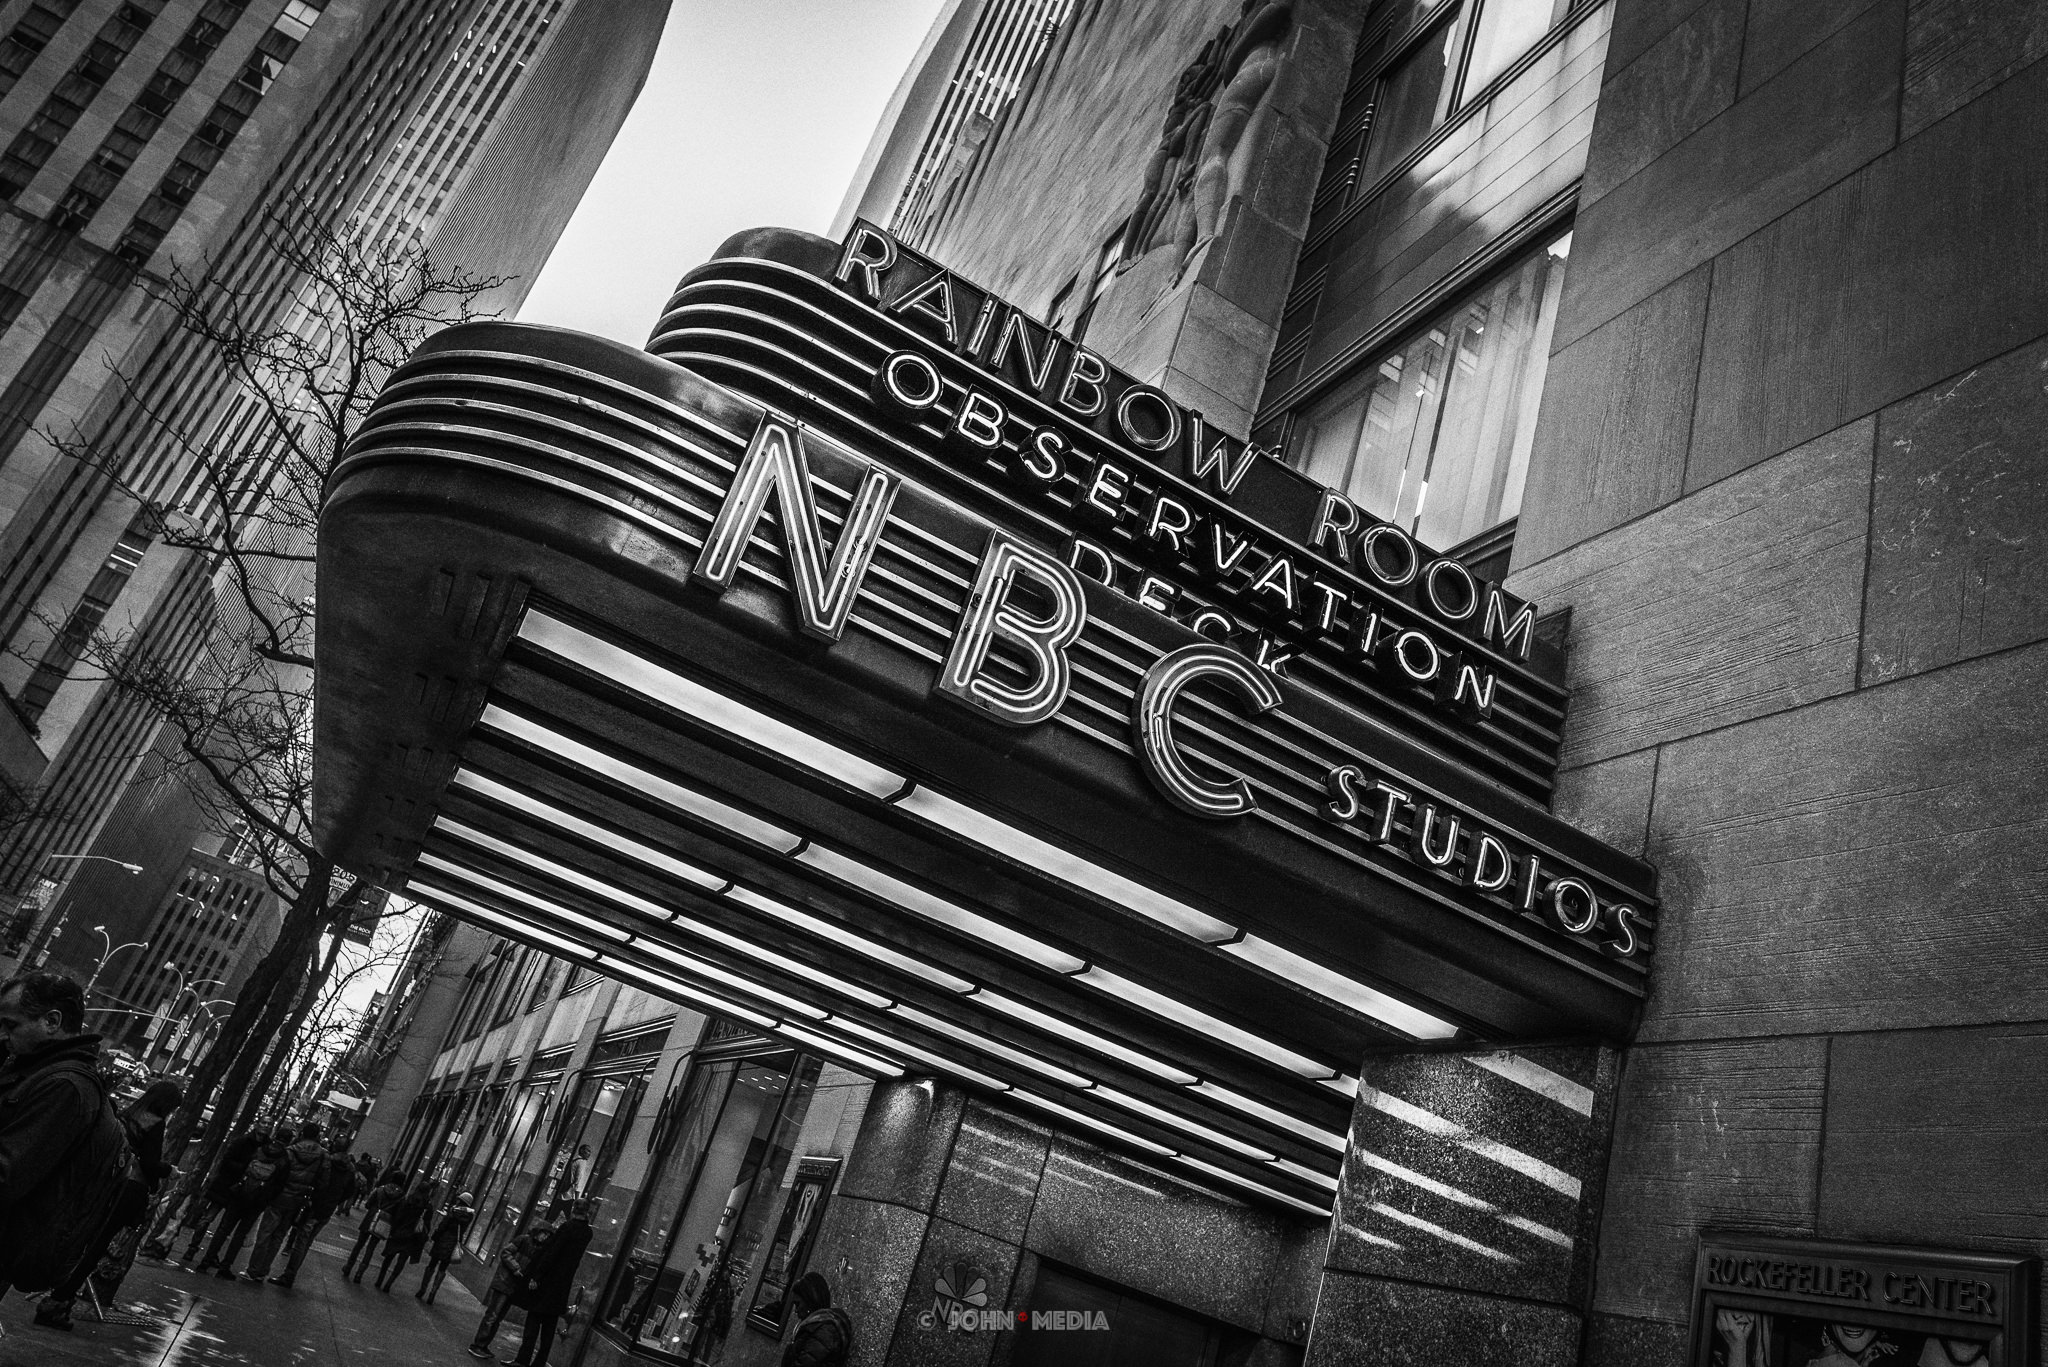 New York NBC Studios